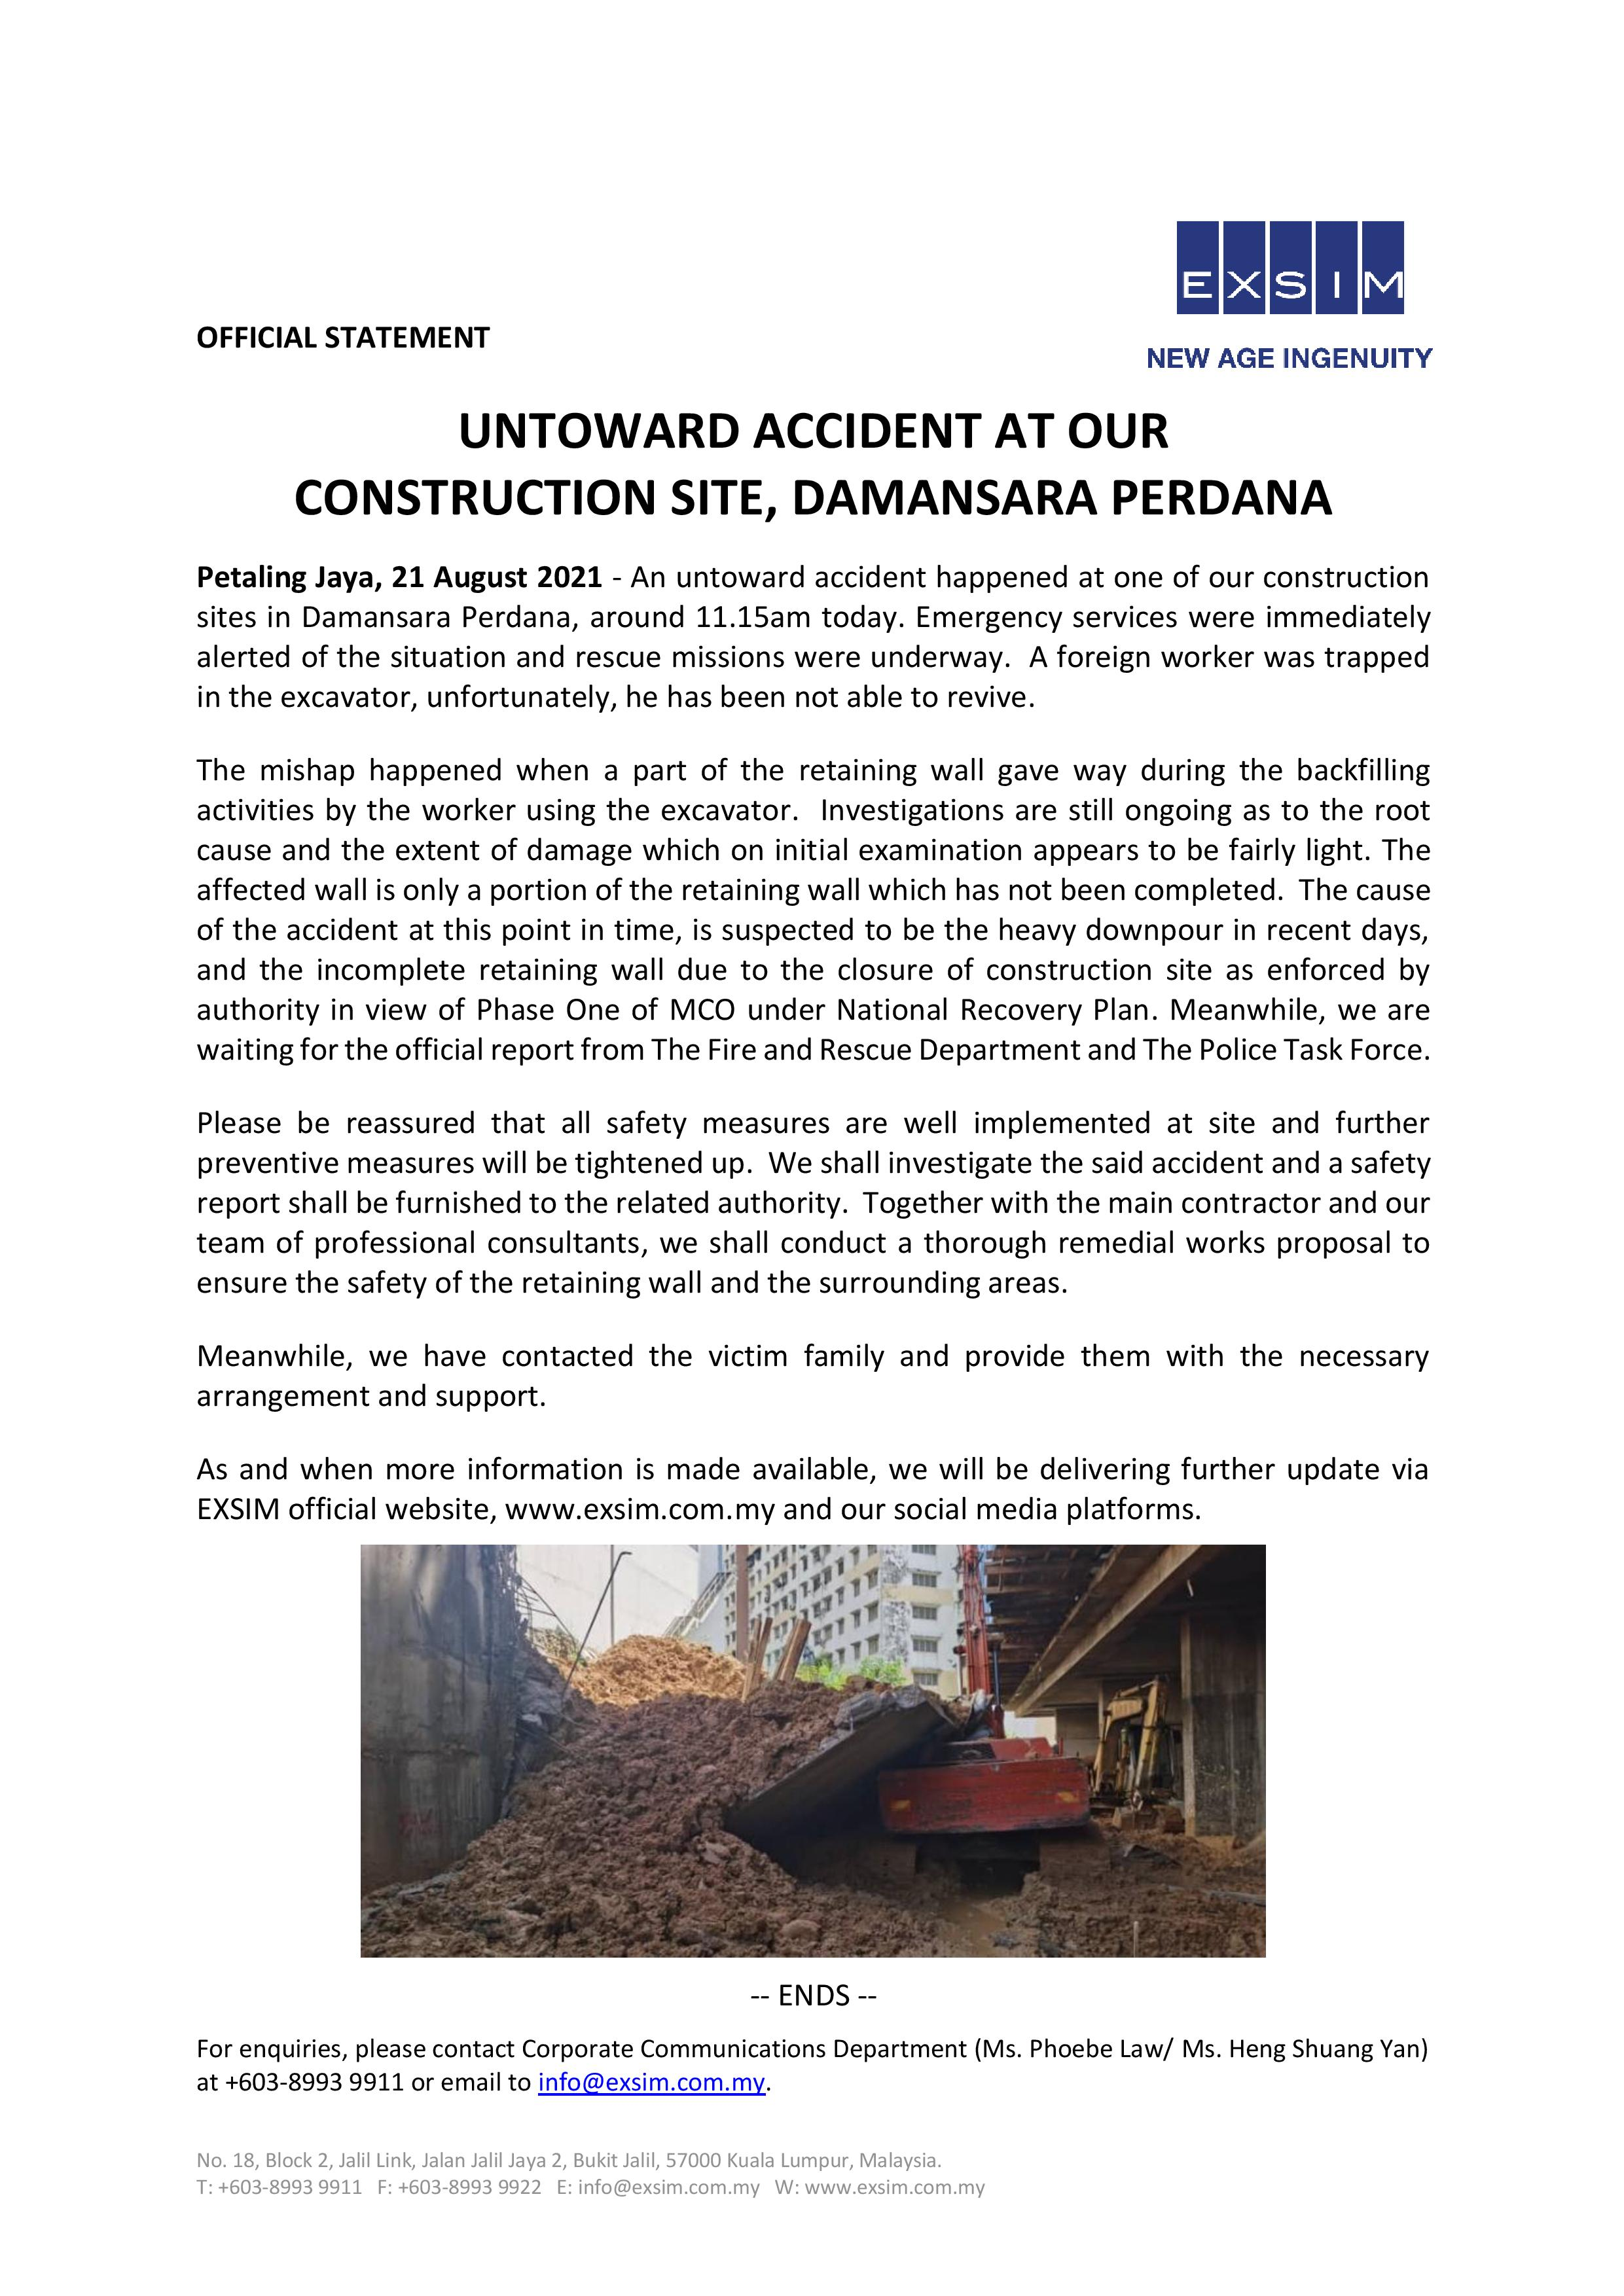 OFFICIAL STATEMENT - UNWARRANTED ACCIDENT AT OUR CONSTRUCTION SITE AT DAMANSARA PERDANA